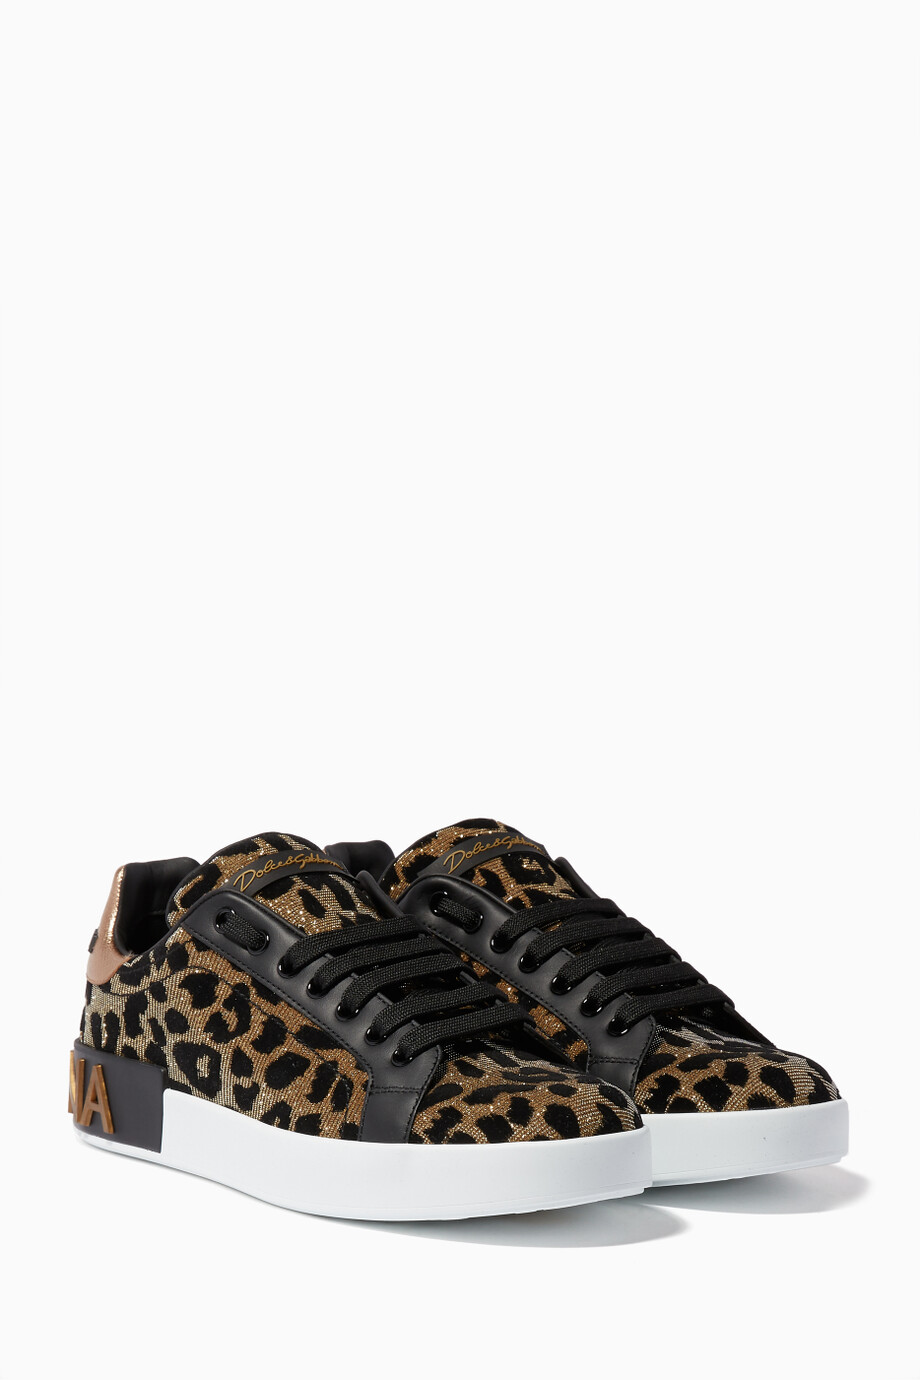 1634f8034504 Shop Dolce & Gabbana Gold Gold Leopard-Print Portofino Sneakers for ...